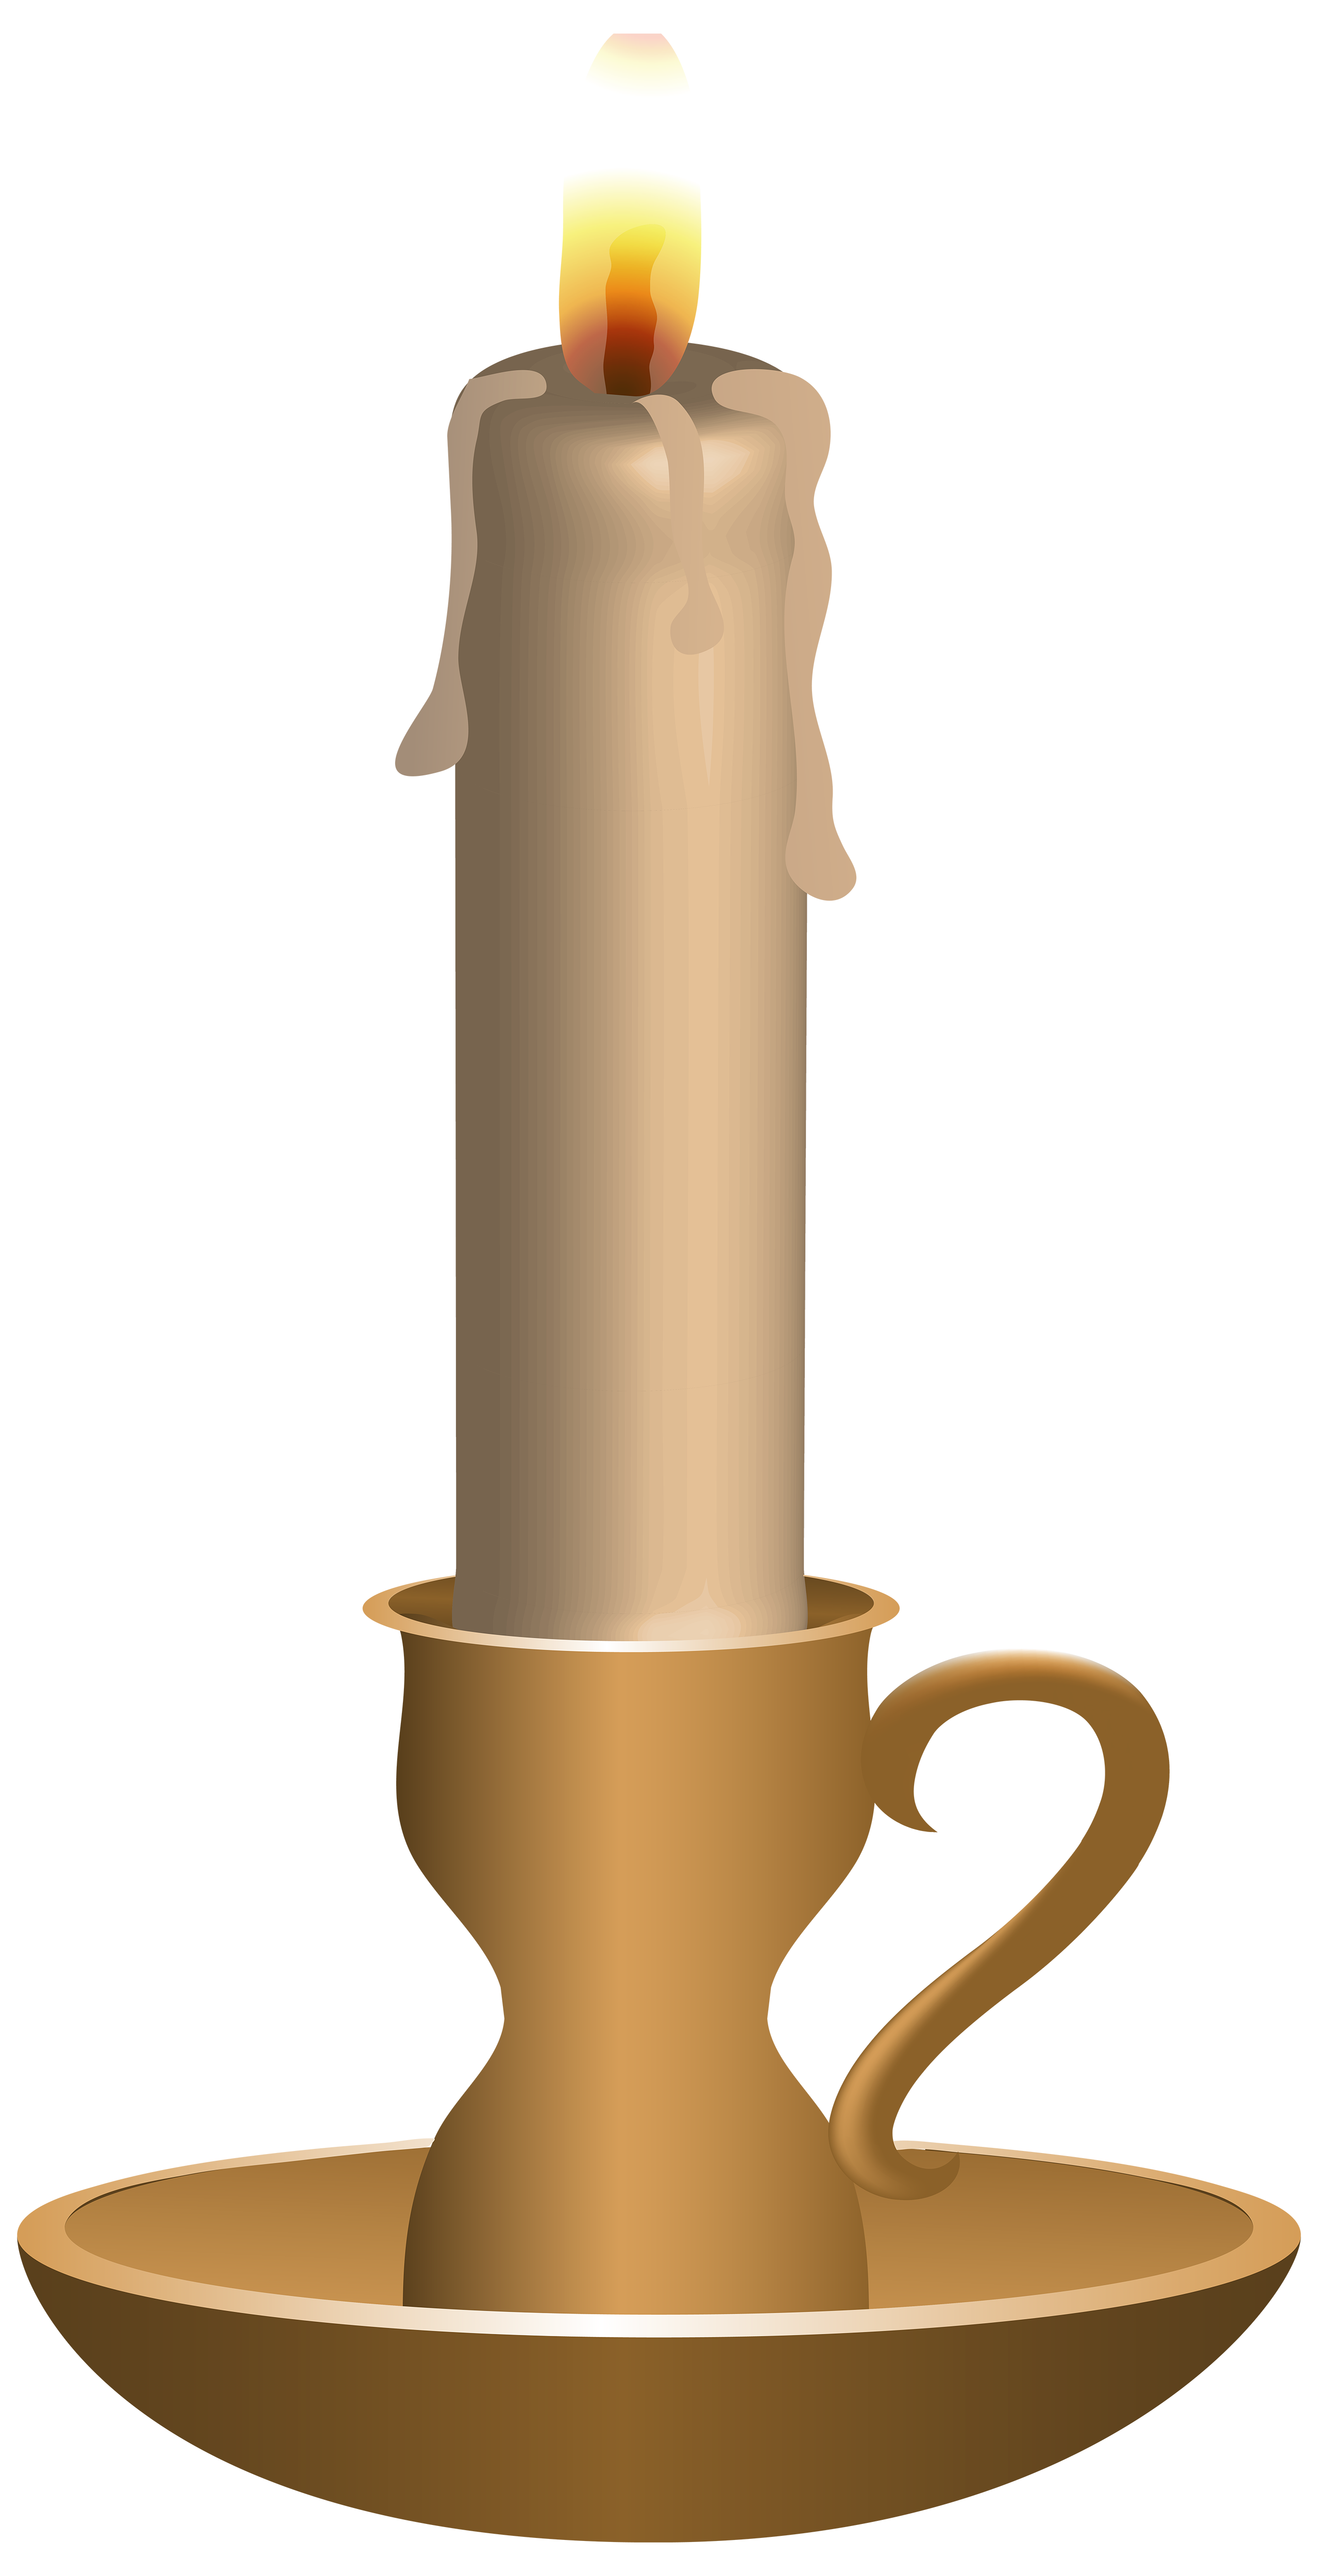 Clipart png candle. Old clip art best